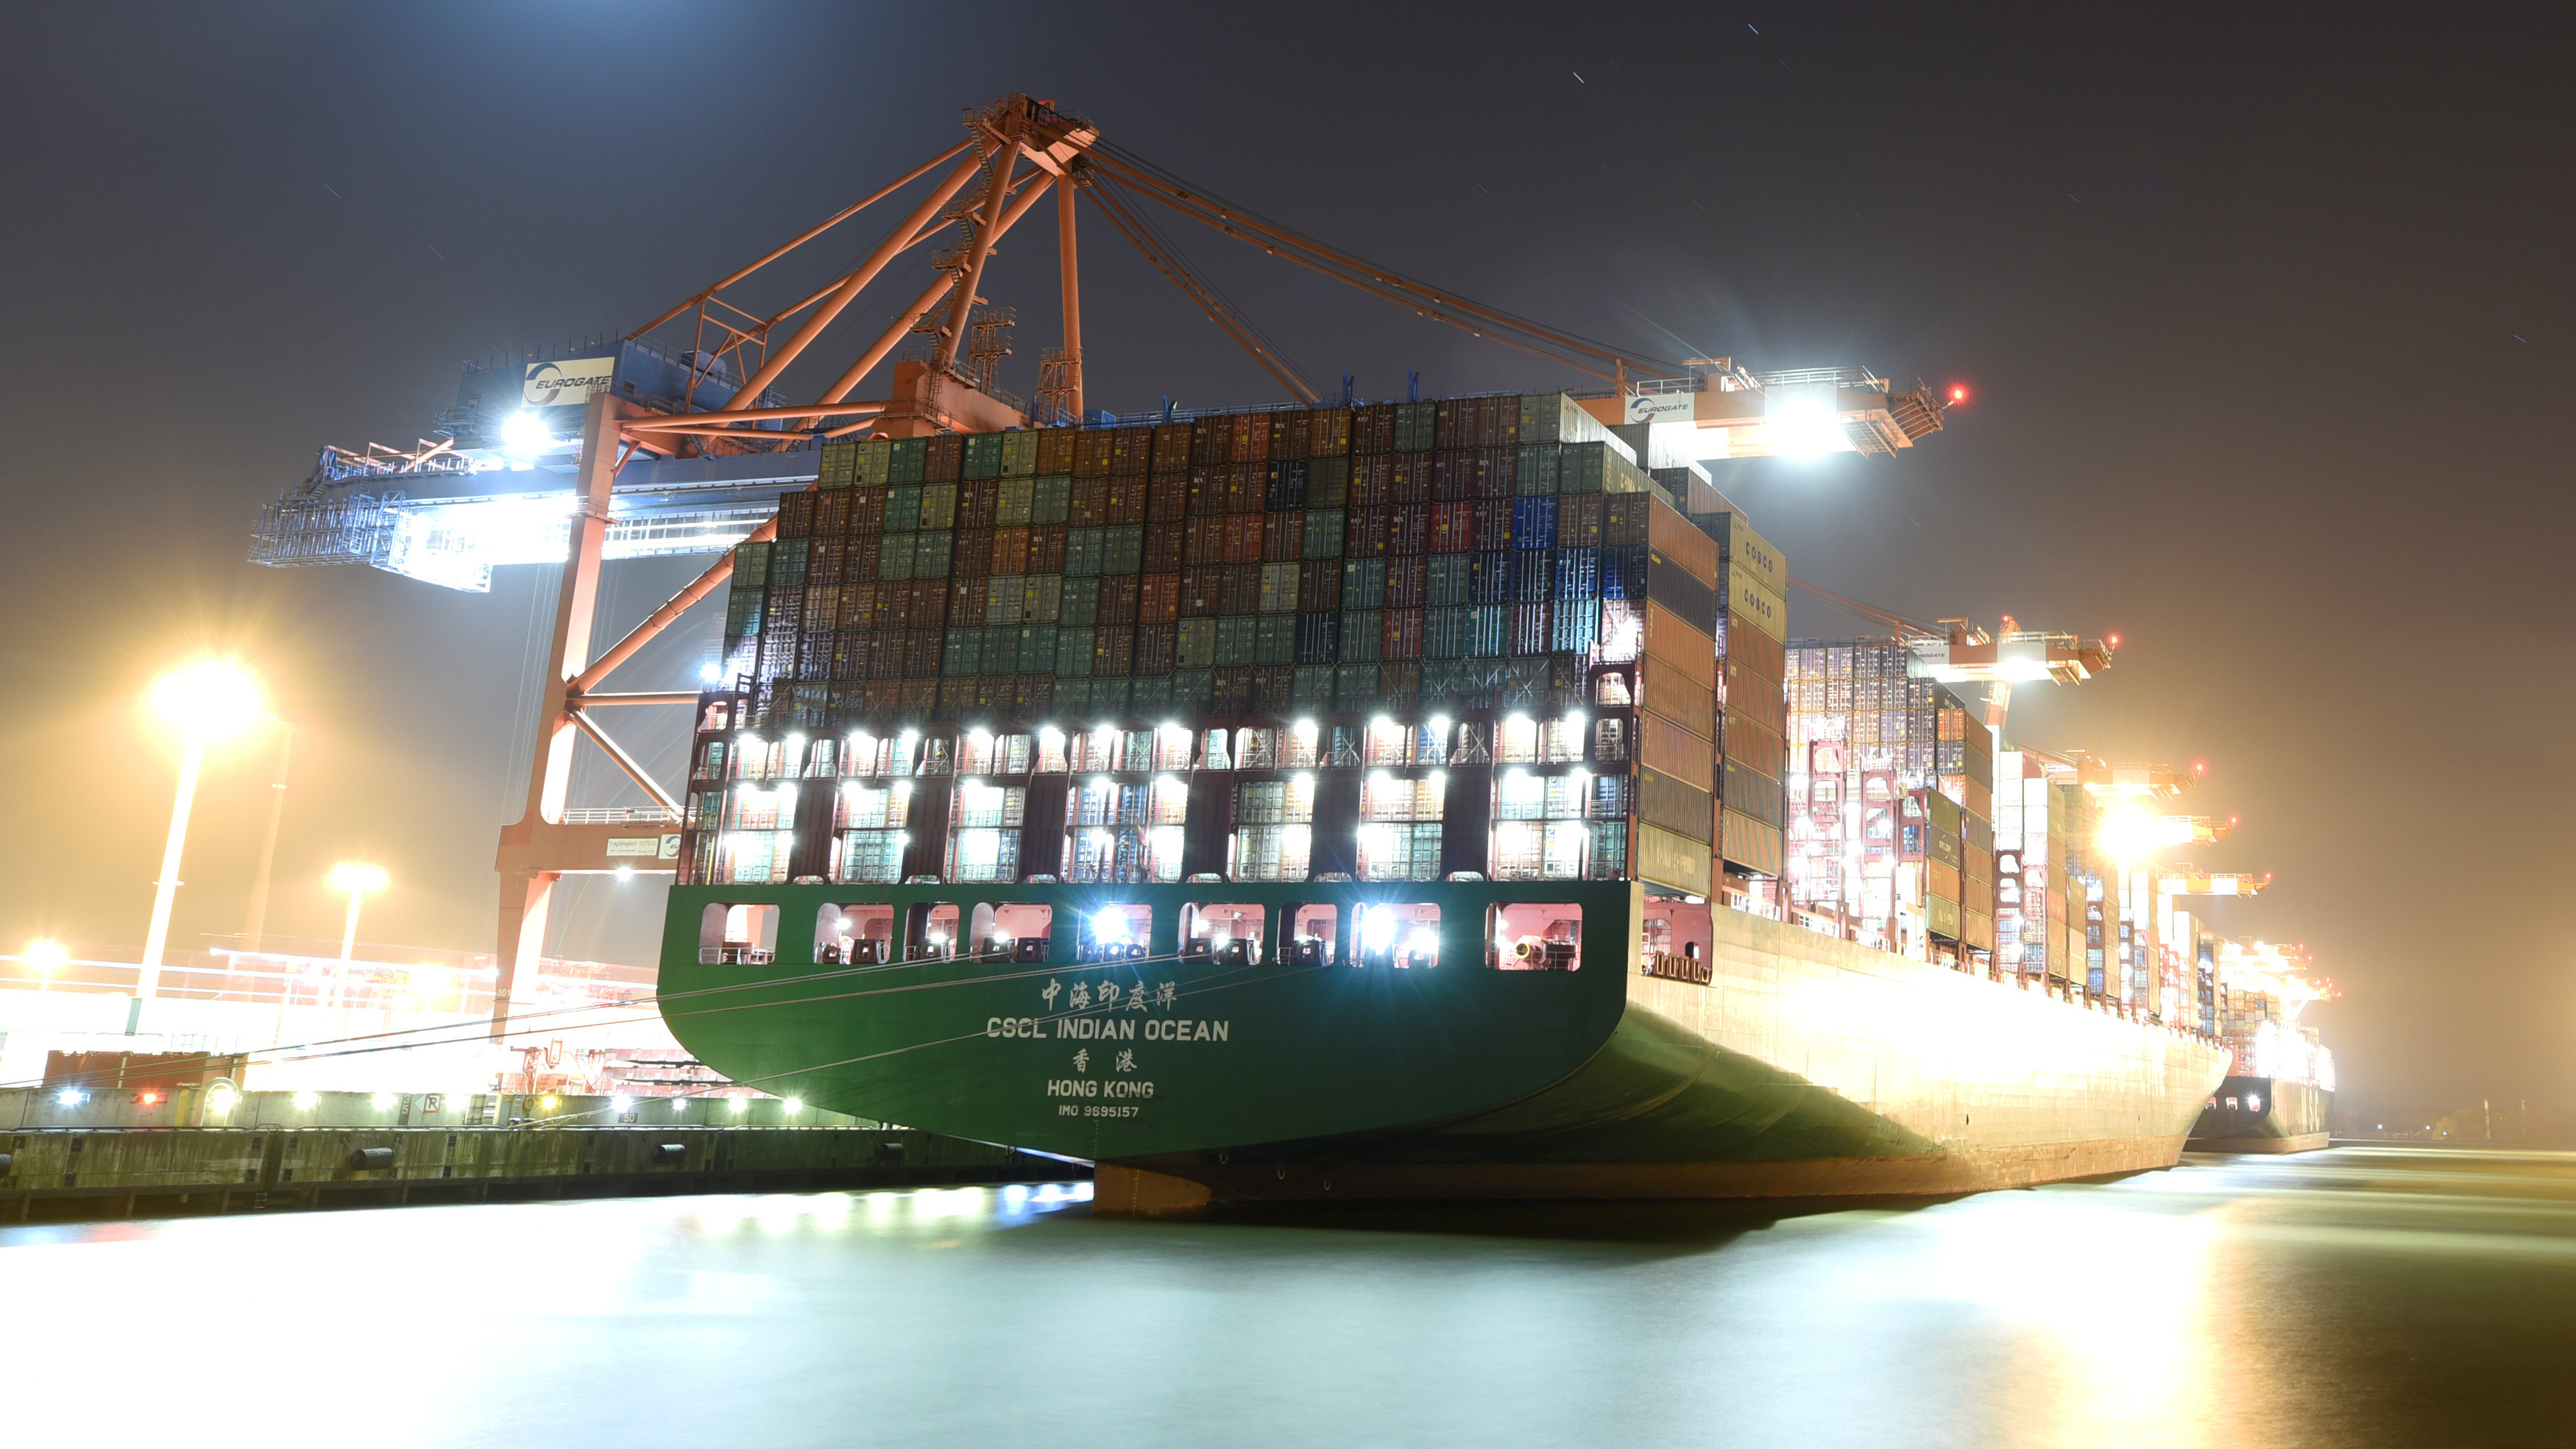 A ship filled with containers.